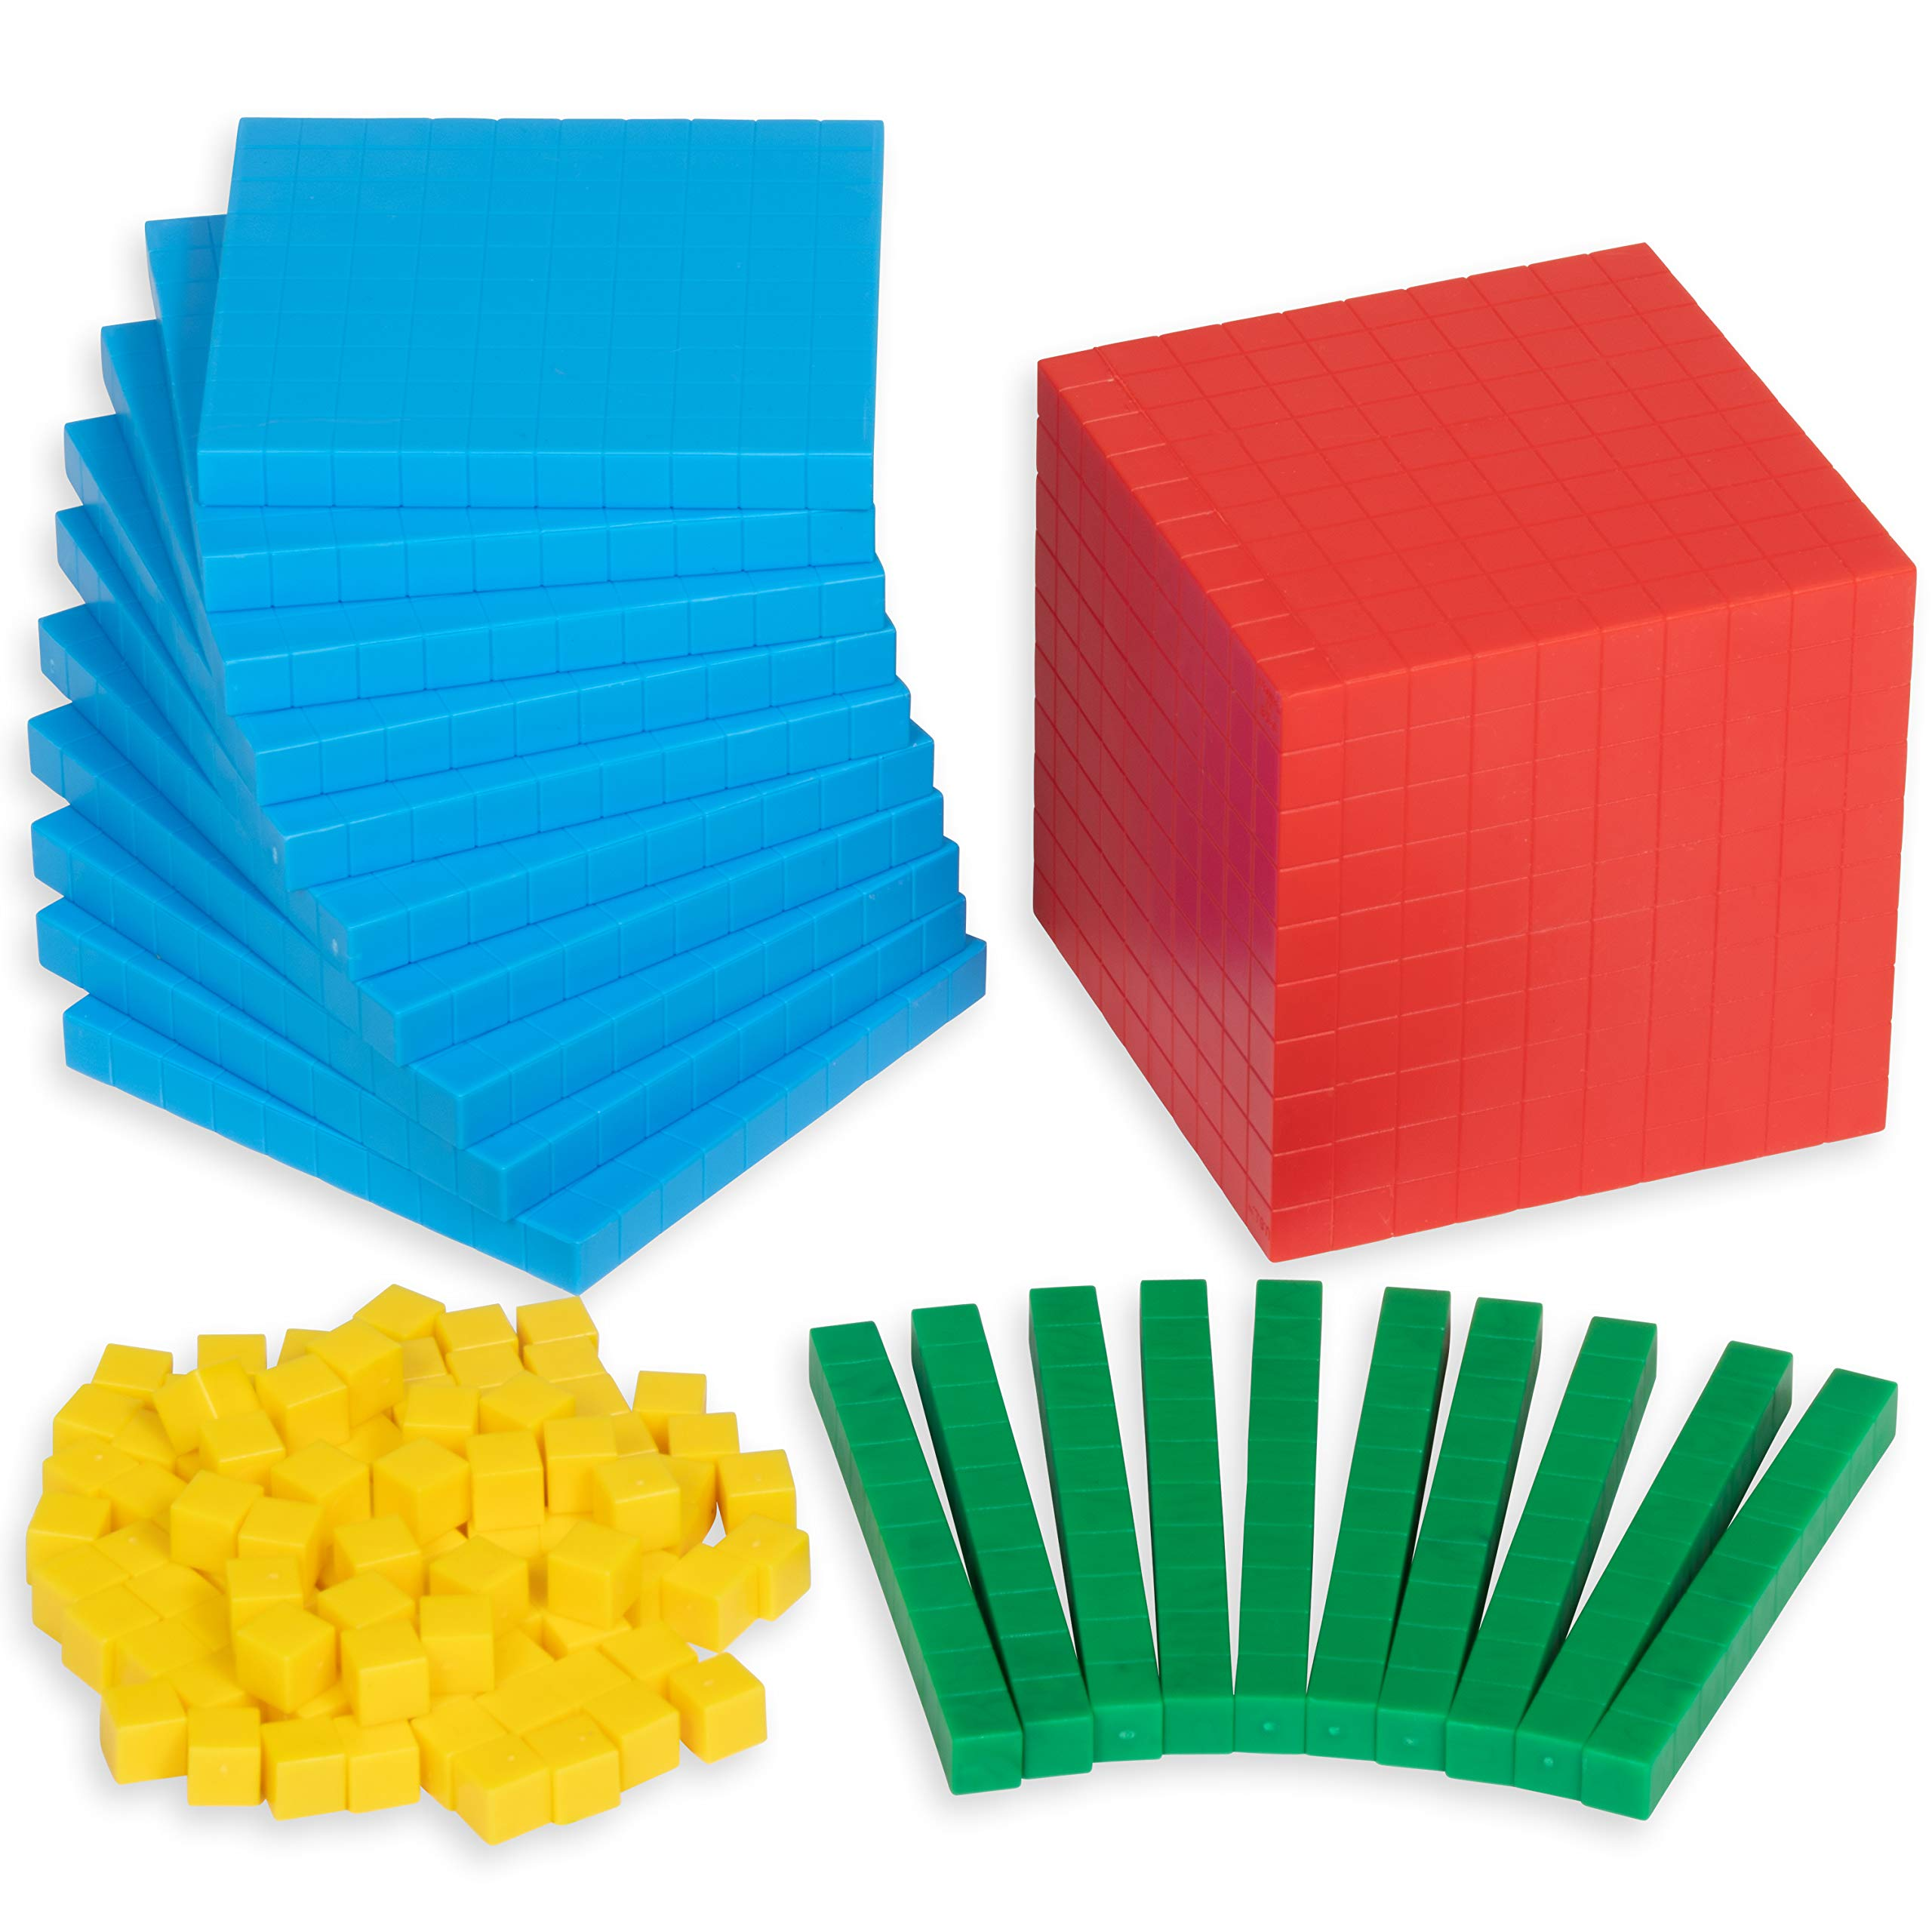 Edx Education Four Color Plastic Base Ten Set - Set of 121 - in Home Learning Manipulative for Early Math - Teach Kids Number Concepts, Place Value and Volume